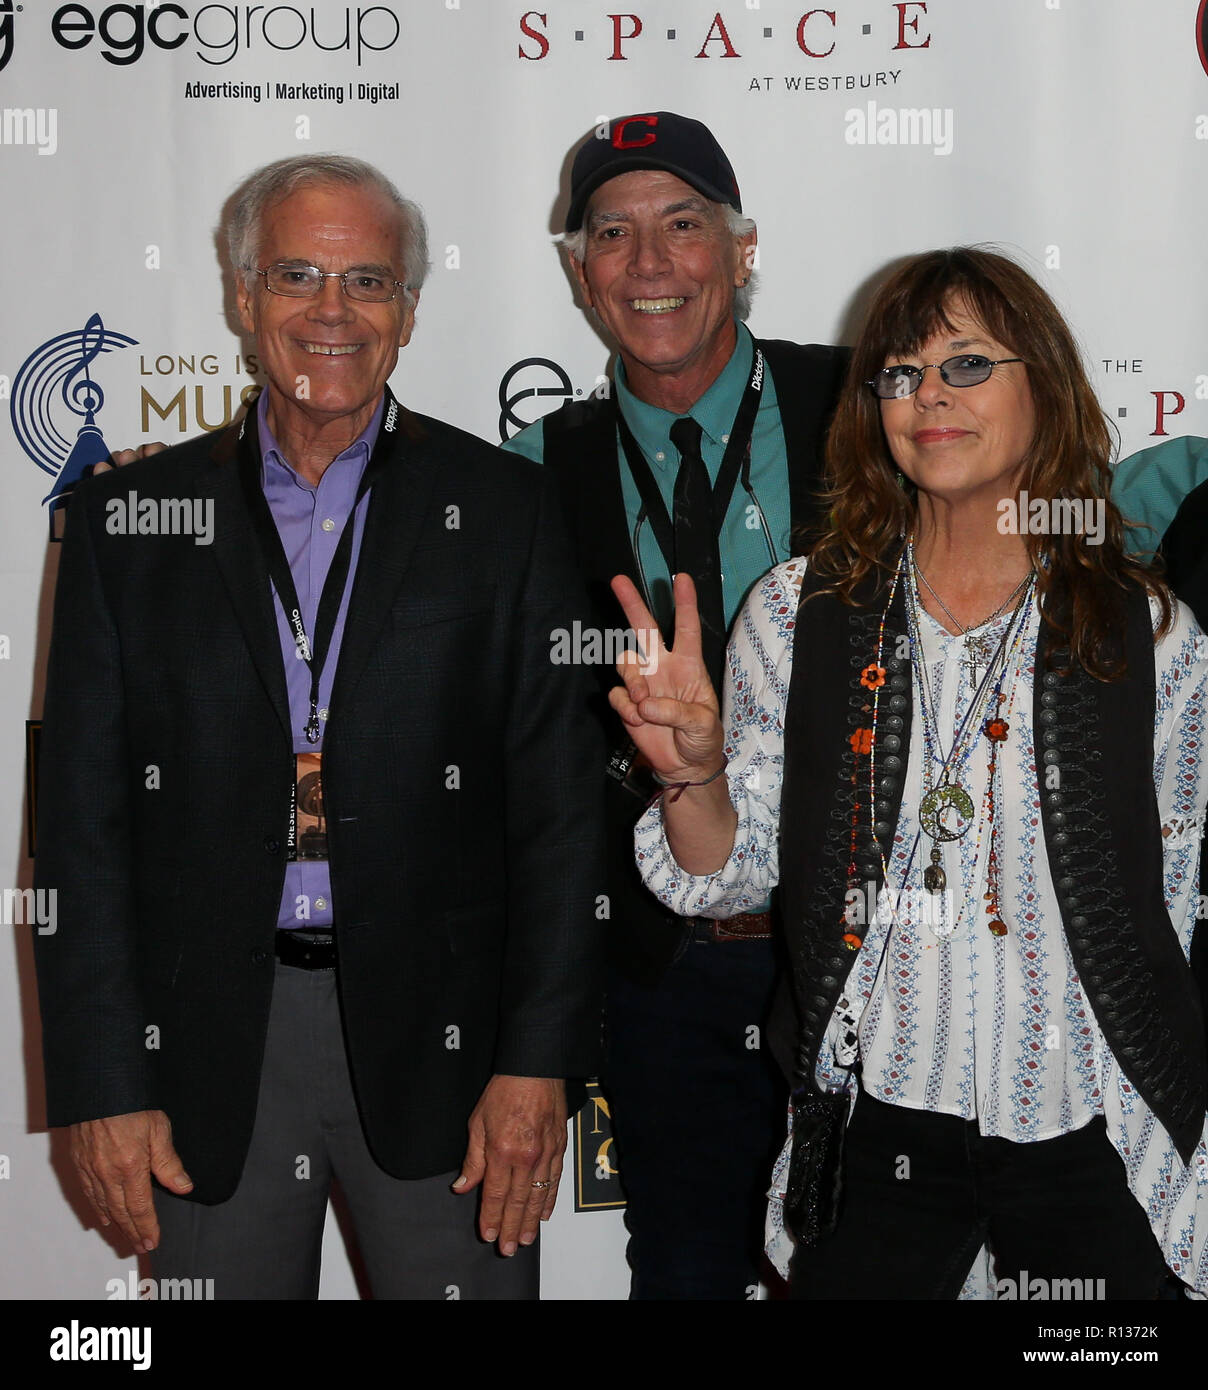 Westbury, United States. 08th Nov, 2018. WESTBURY, NY - NOV 8: (L-R) Paul Cowsill, Bob Cowsill and Susan Cowsill of the Cowsills attend the 2018 Long Island Music Hall of Fame induction ceremony at The Space at Westbury on November 8, 2018 in Westbury, New York. Credit: The Photo Access/Alamy Live News - Stock Image